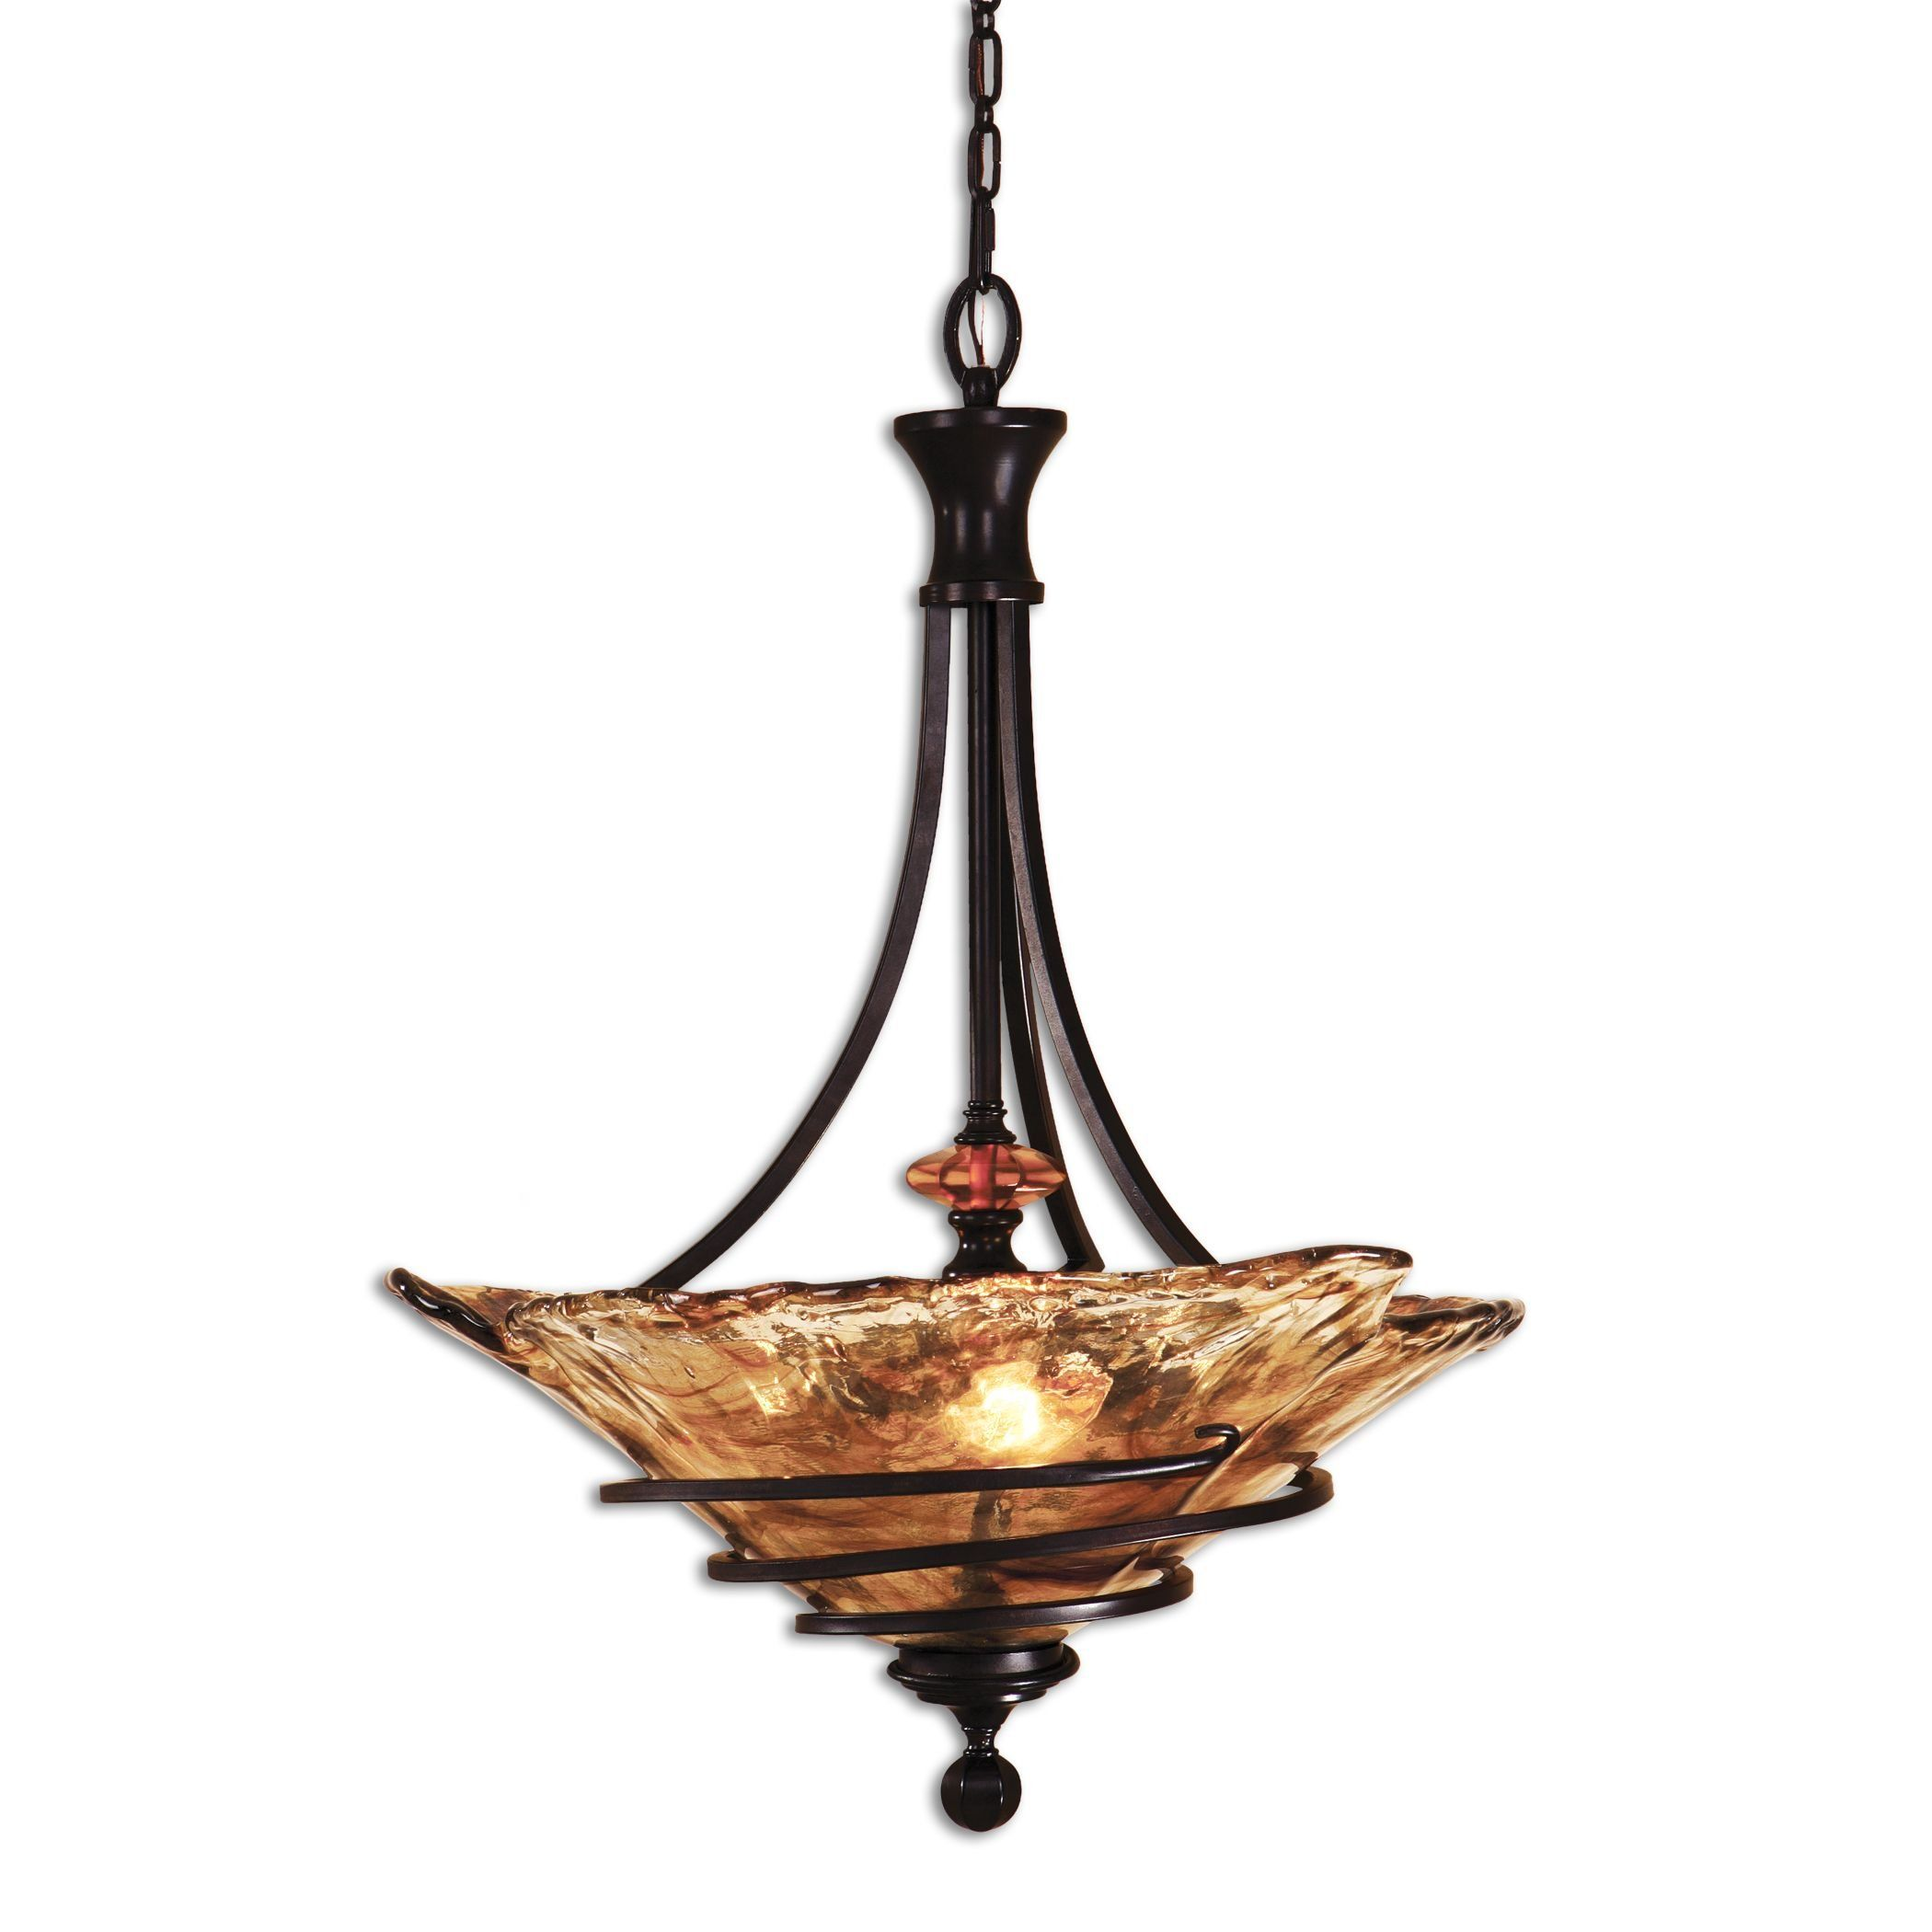 22 Wrought Iron And Art Glass Amber Pendant Chandelier 3